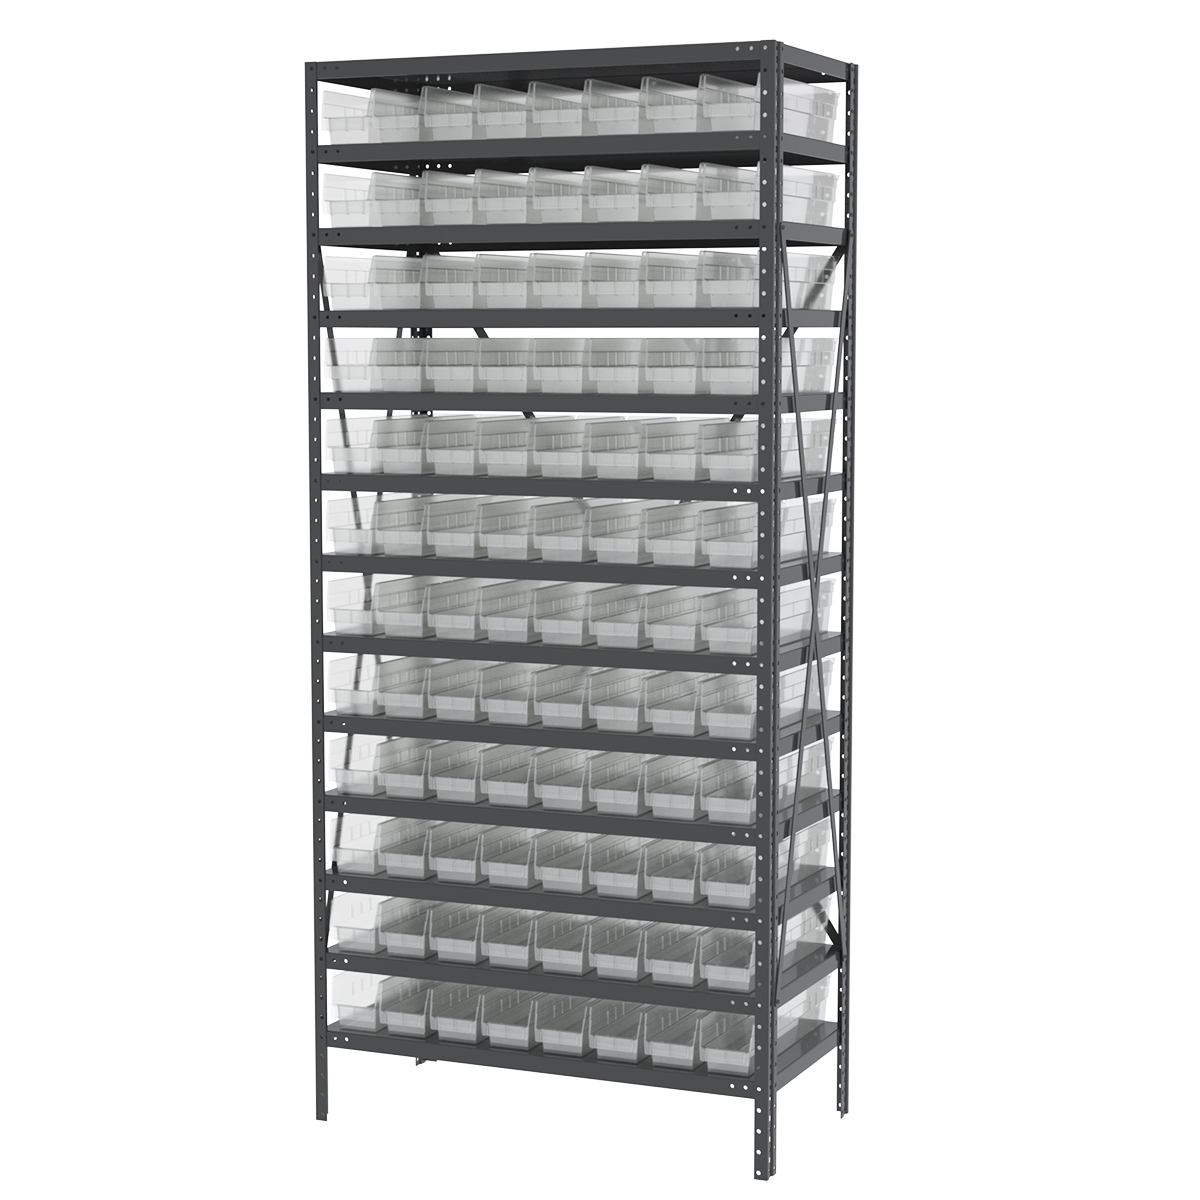 Steel Shelving Kit, 18x36x79, 96 Bins, Gray/Clear.  This item sold in carton quantities of 1.